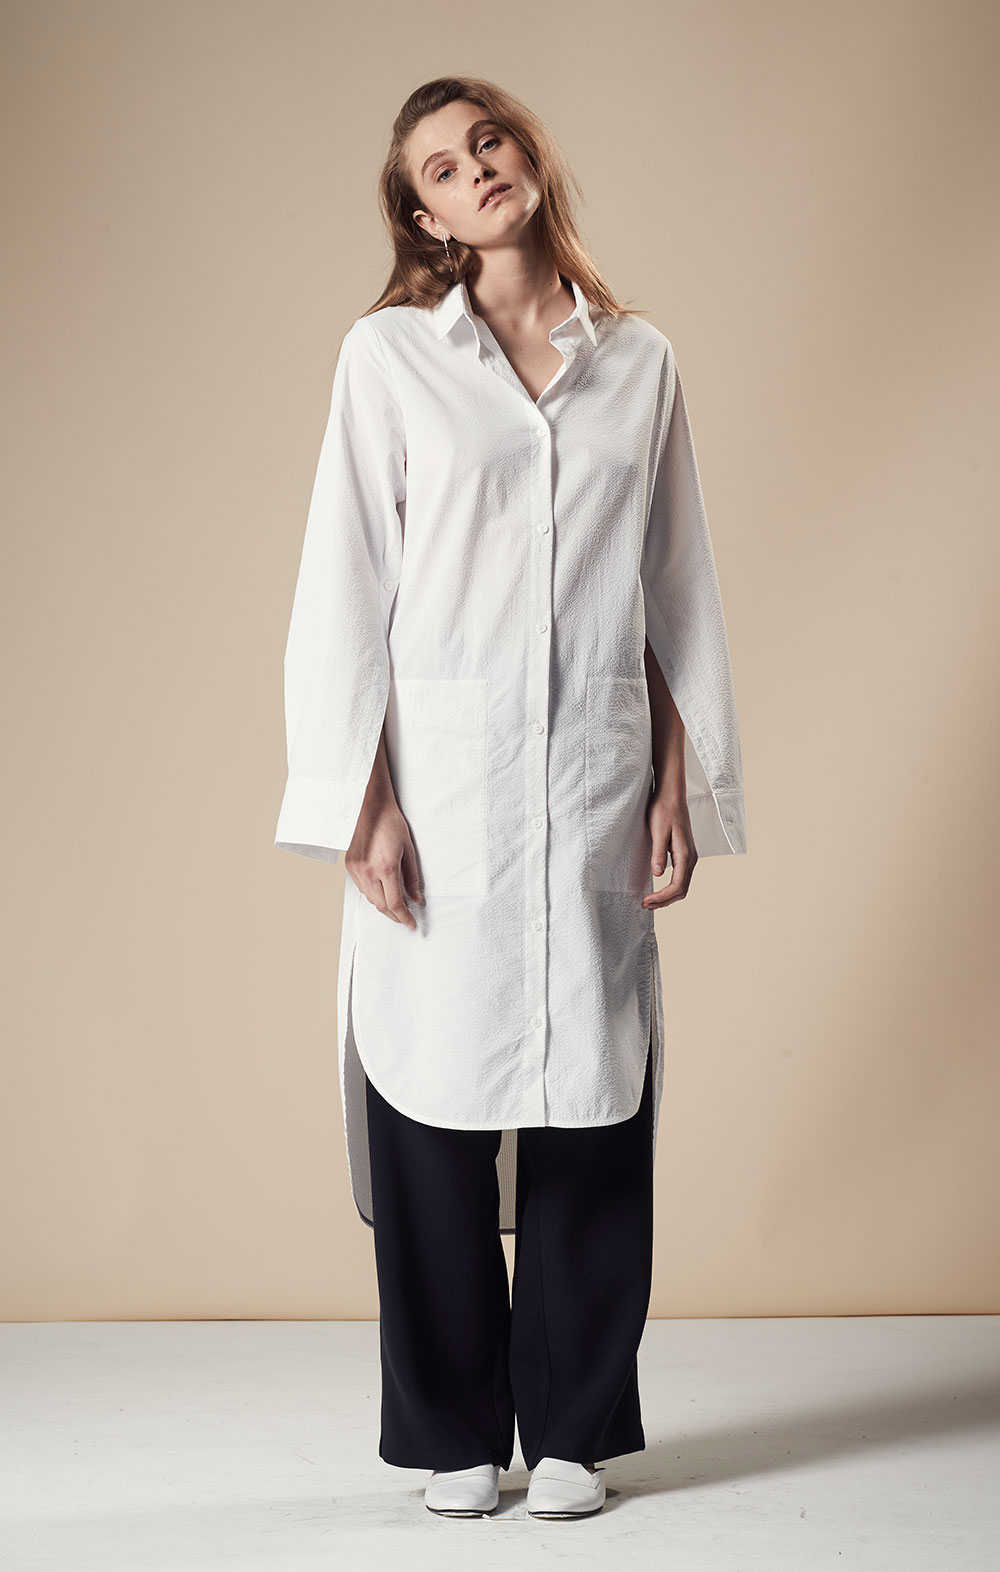 Open Sleeve Shirt Dress FBD050-WHT Tie Front Wide-leg Pant FBP035-NVY